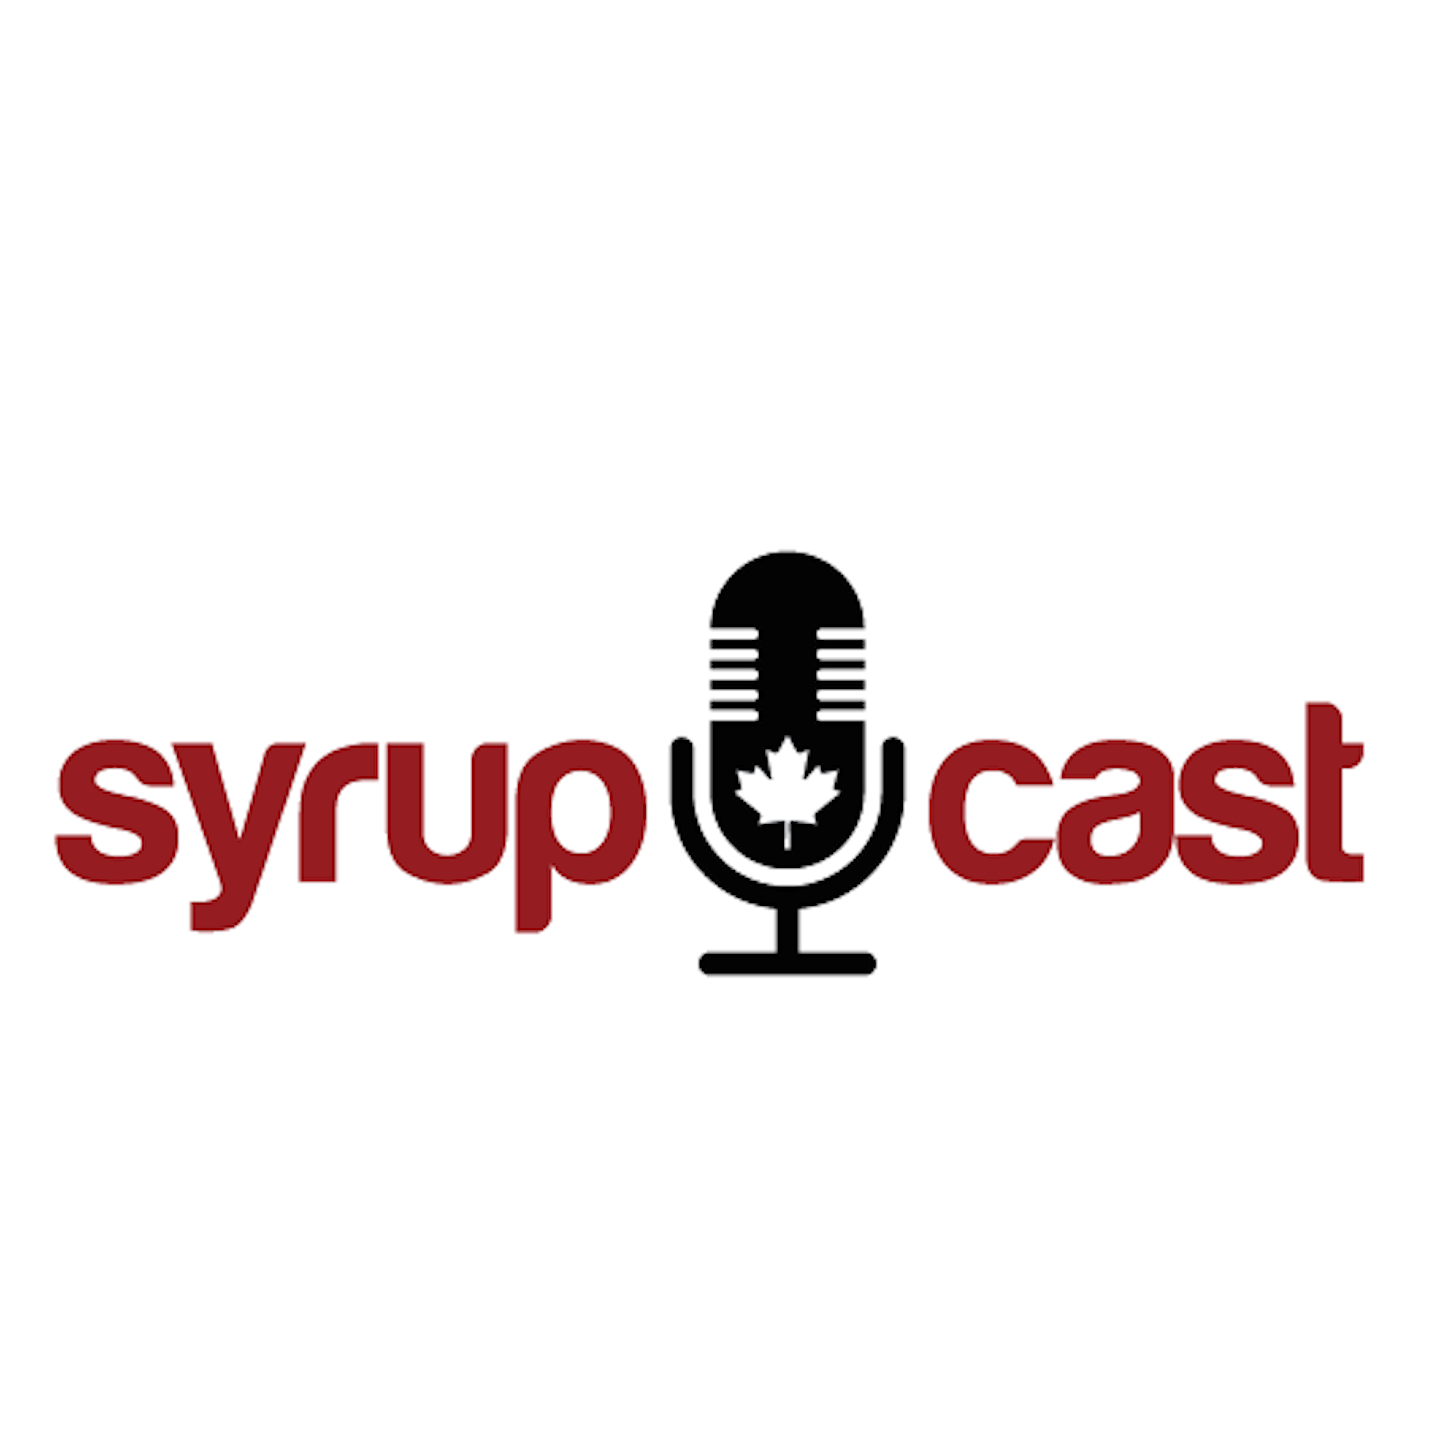 SyrupCast 81: Galaxy Note 7 and the Hub+ life